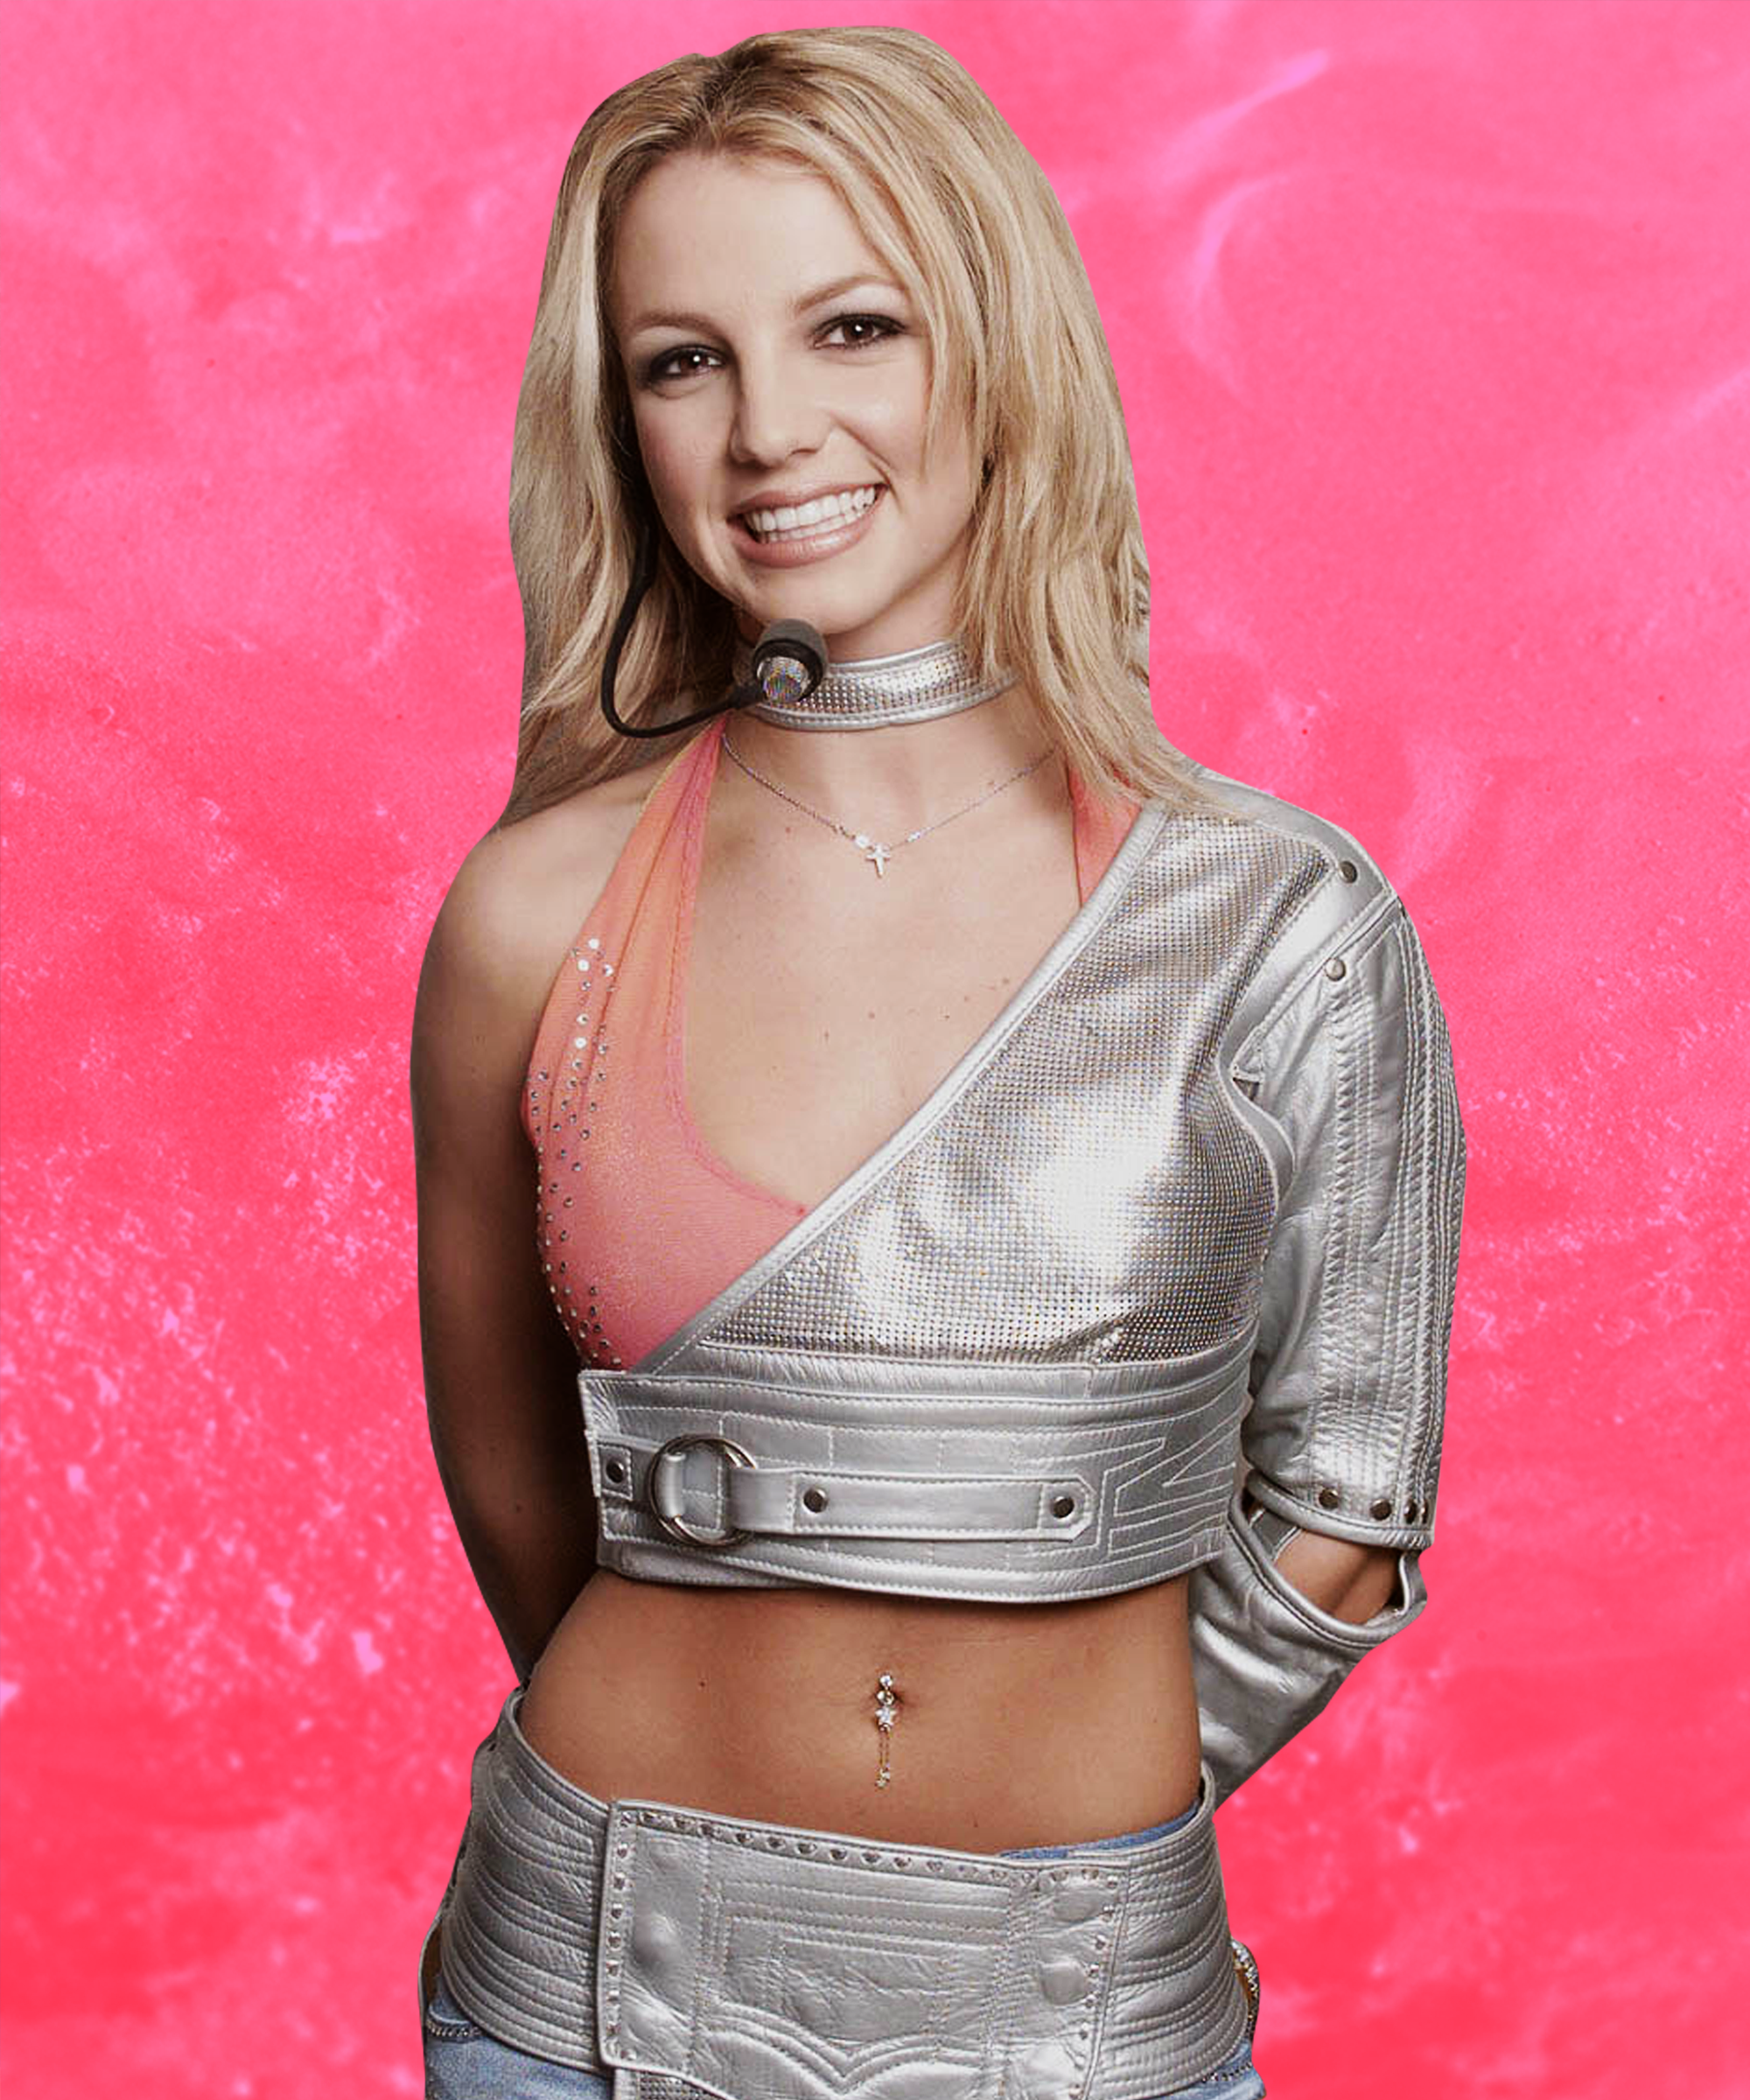 Britney Spears Halloween Costumes Based On Music Video